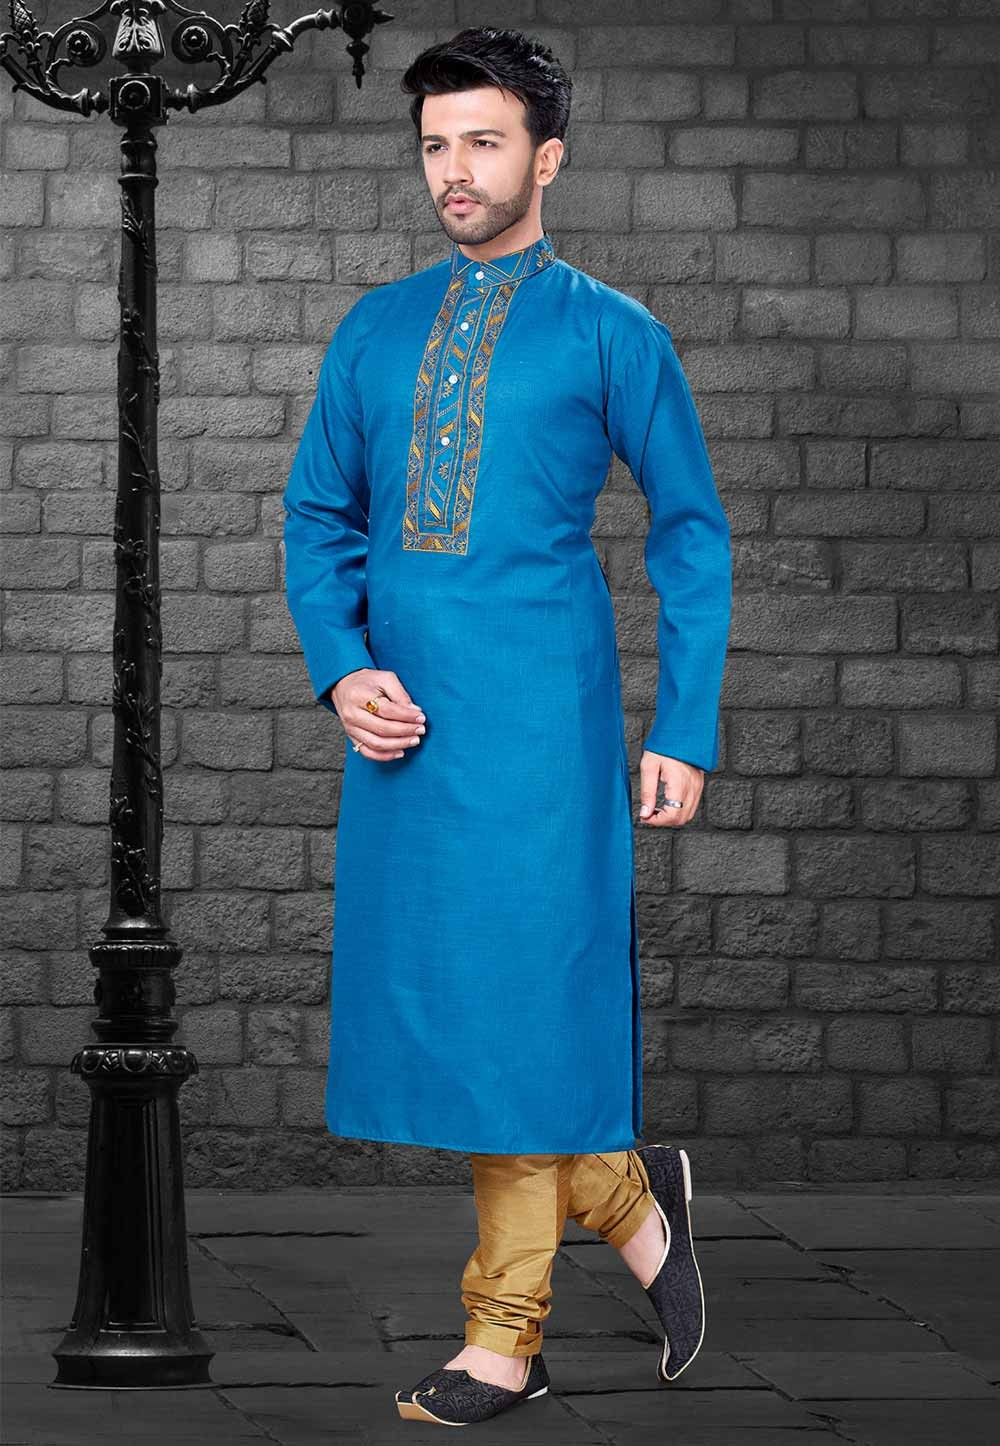 Party Wear: Buy Kurta Pajama Online in Blue Colour